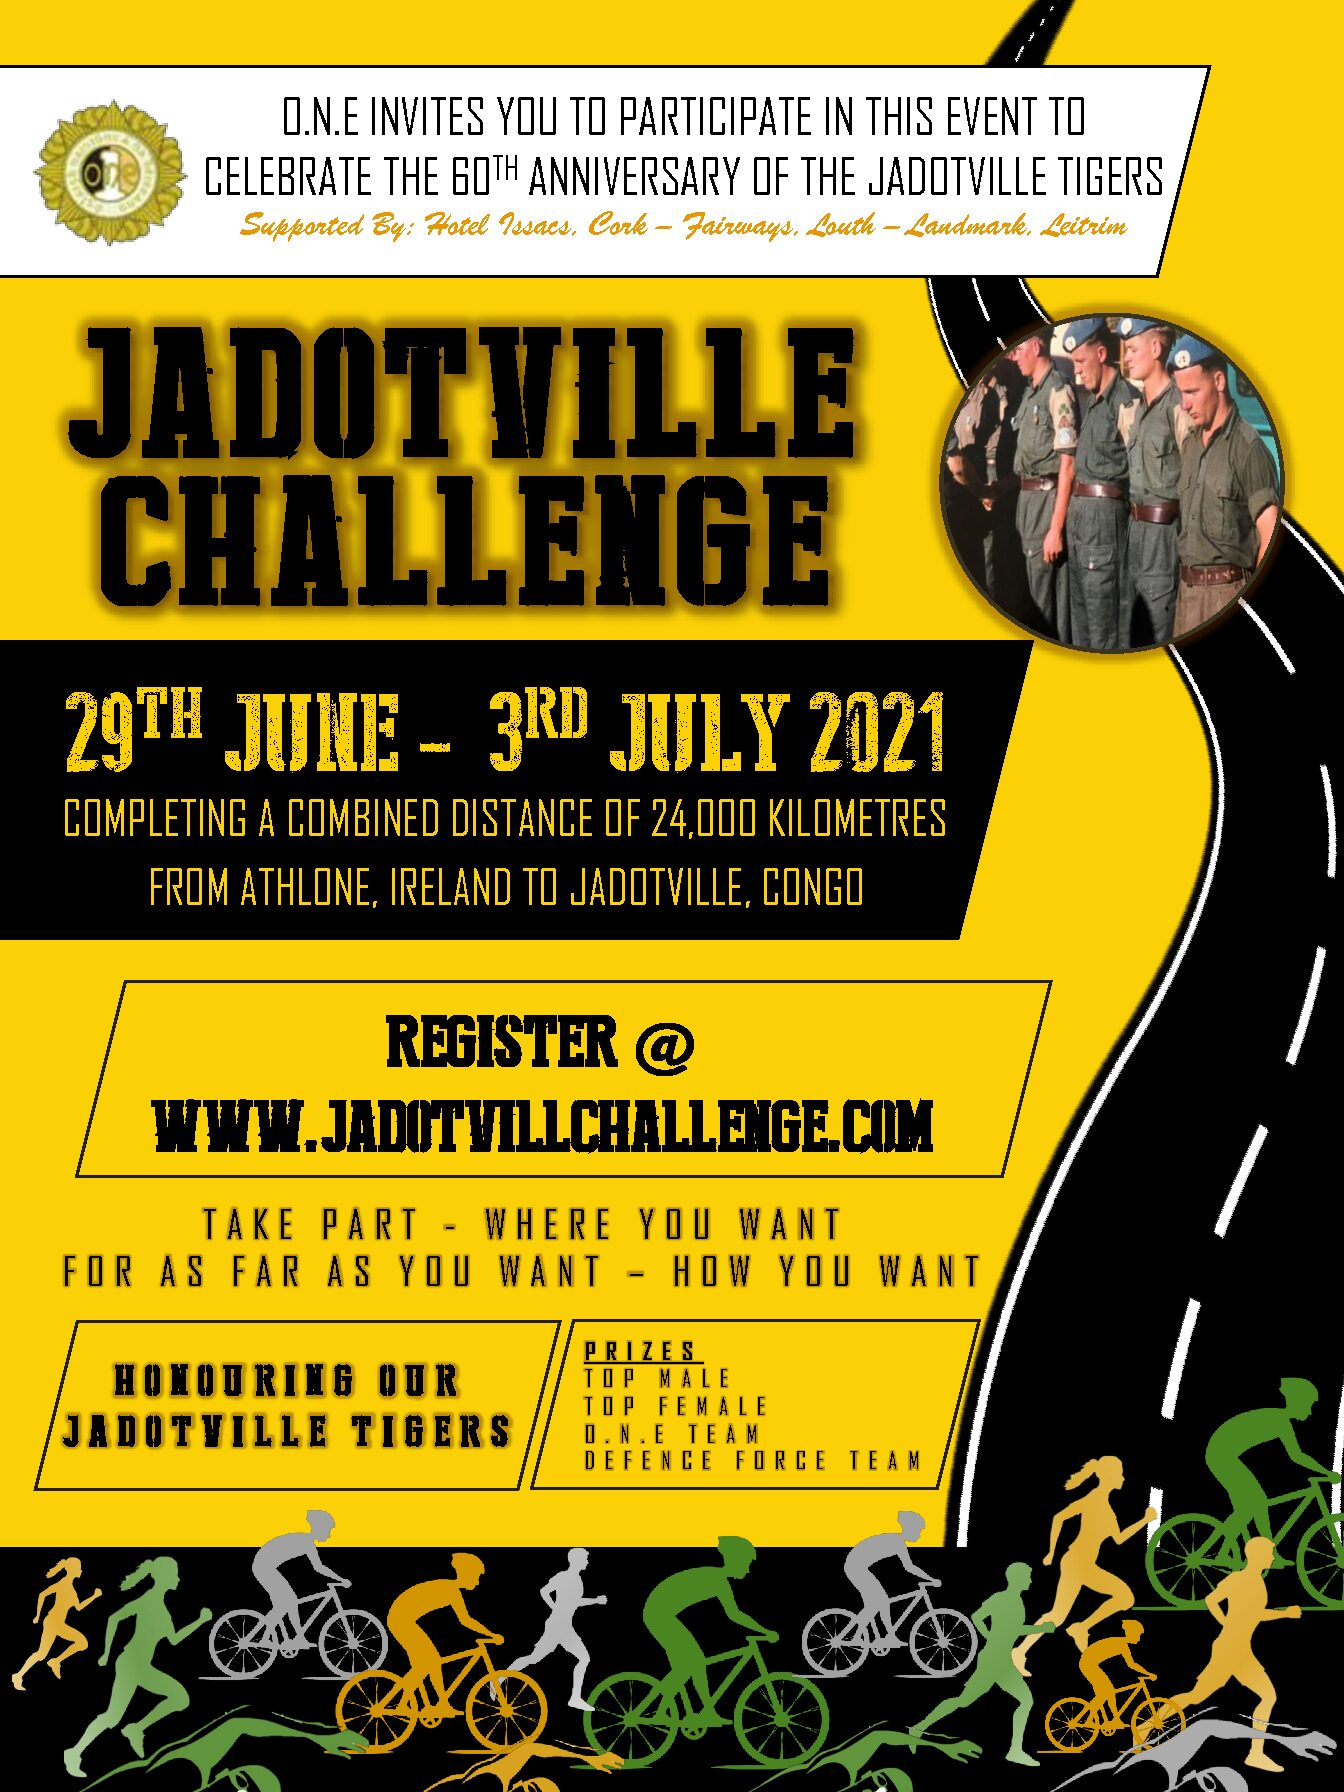 JADOTVILLE CHALLENGE 29th June to the 3rd July 2021